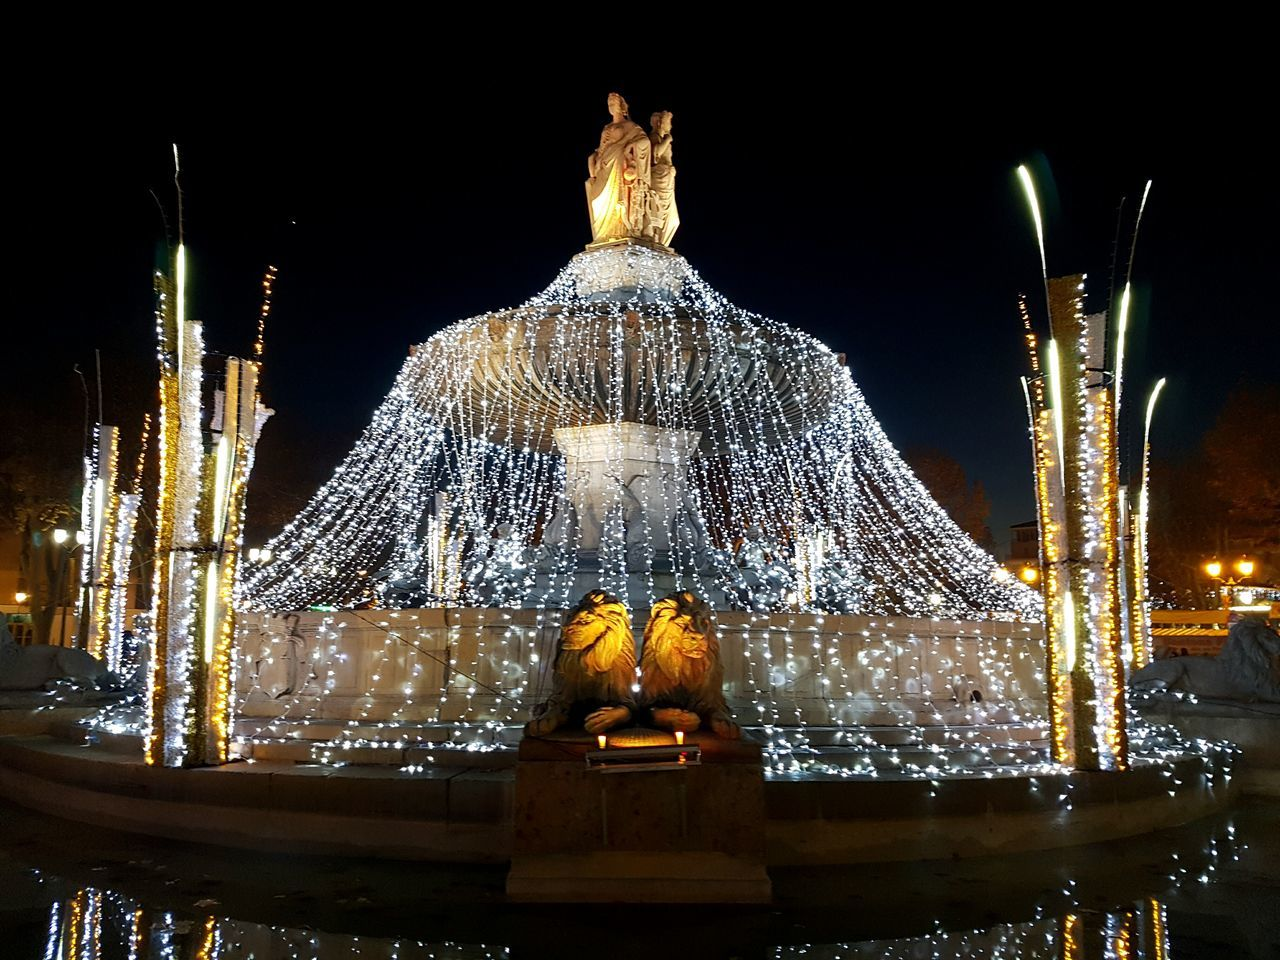 Night Illuminated Christmas Decoration Christmas No People Statue Gold Colored Christmas Ornament Sky Outdoors Coursmirabeau Noel2016 First Eyeem Photo Aixenprovence Larotonde Fontaine Fontain Provence Photography City Lights Freshness